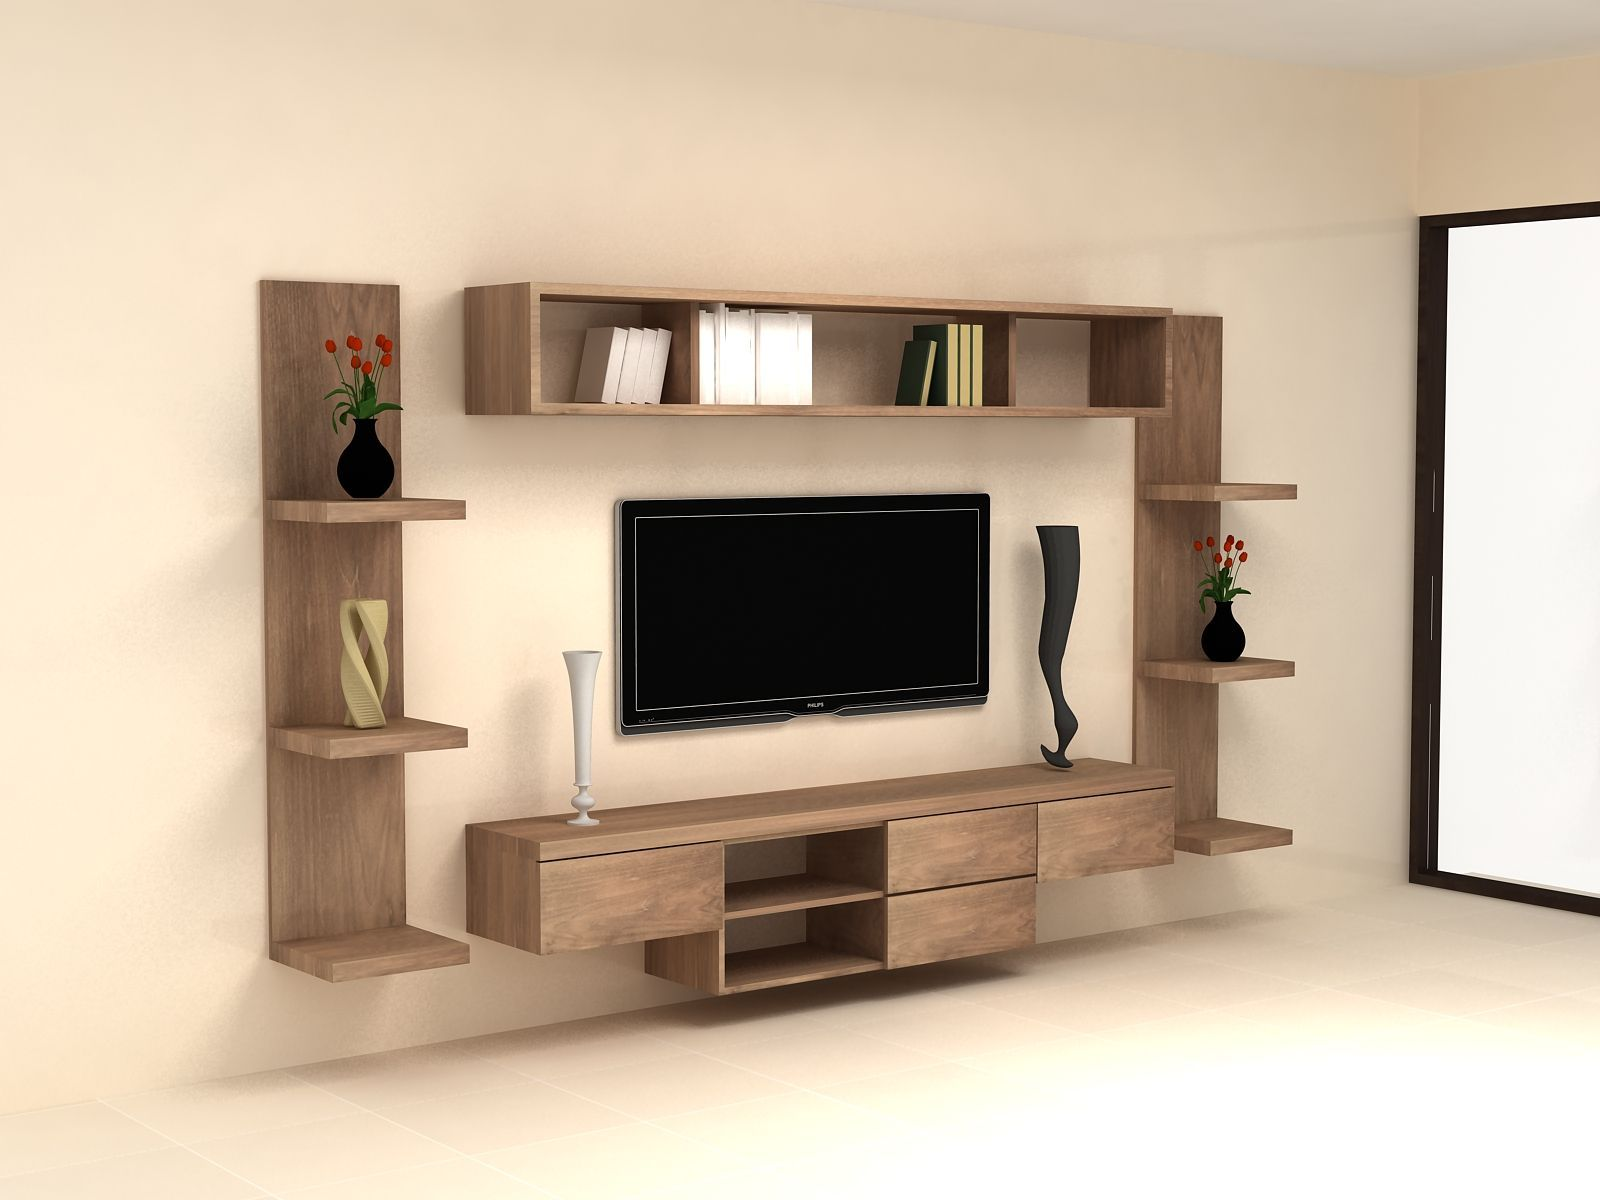 Pin By Shruthi On Tv Cabinet In 2020 Modern Tv Wall Units Tv Cabinet Design Modern Tv Units